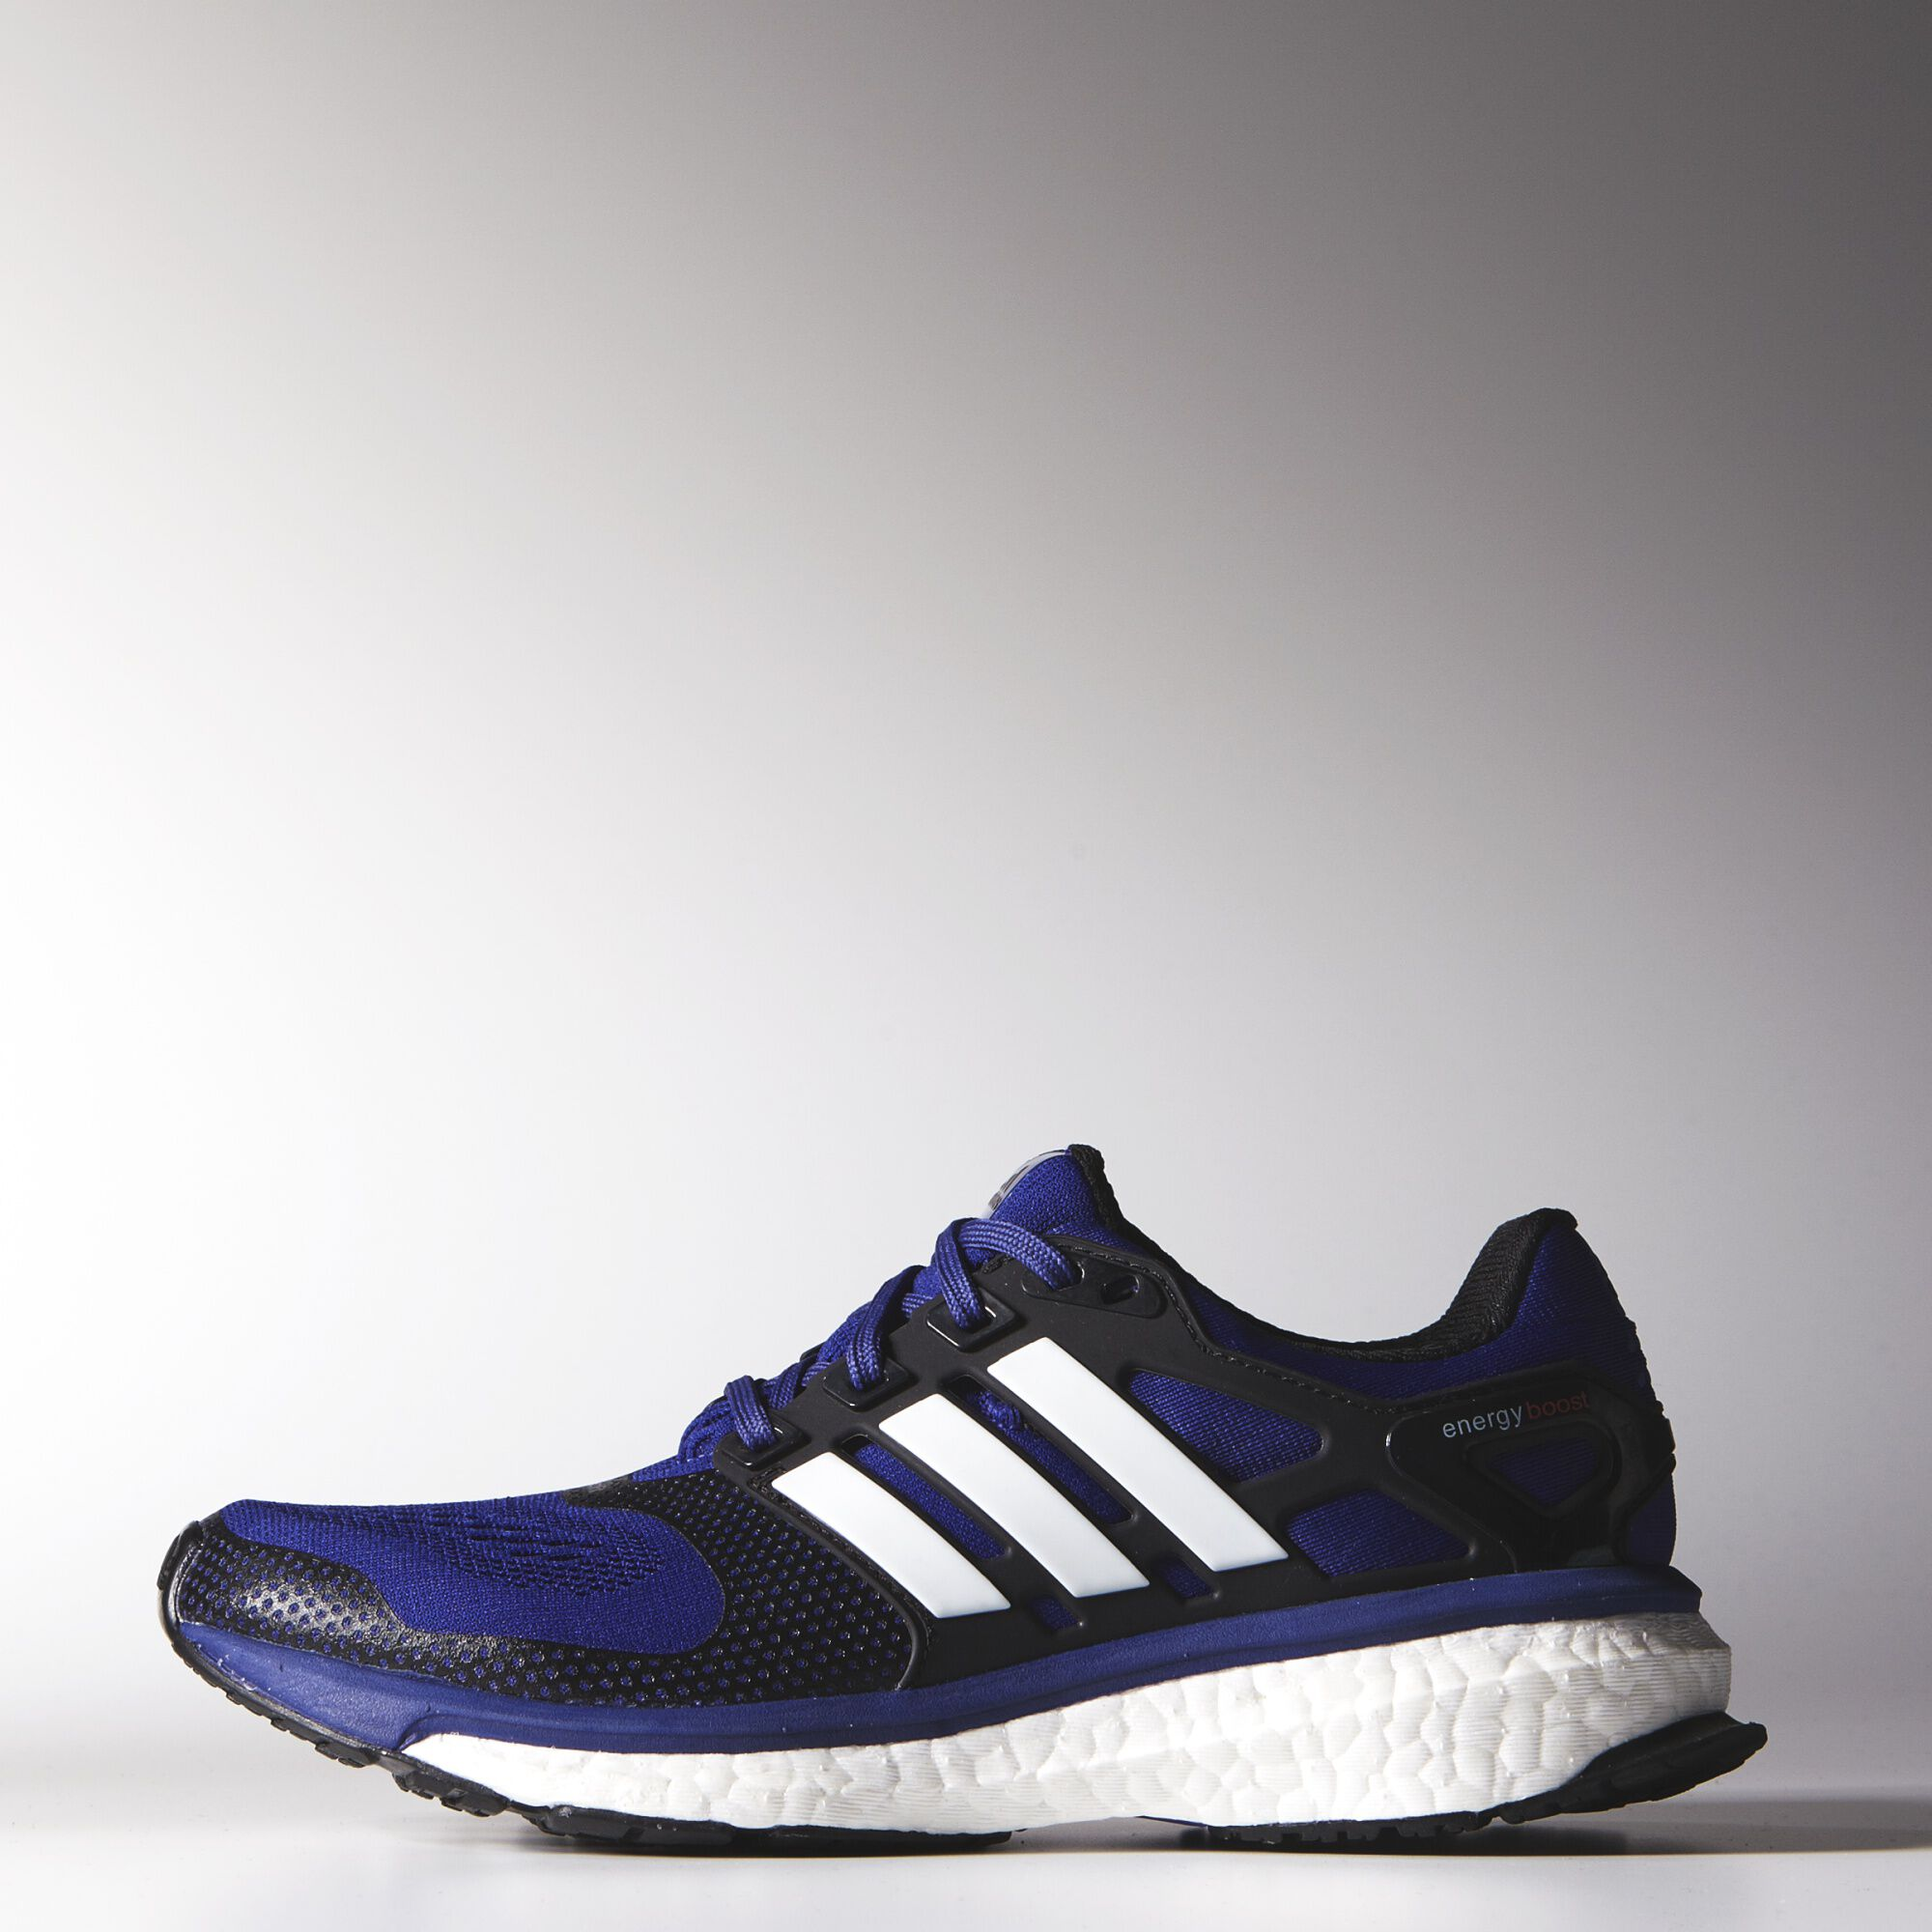 adidas energy boost Chaussures amazon Galerie MLS noffiy6655